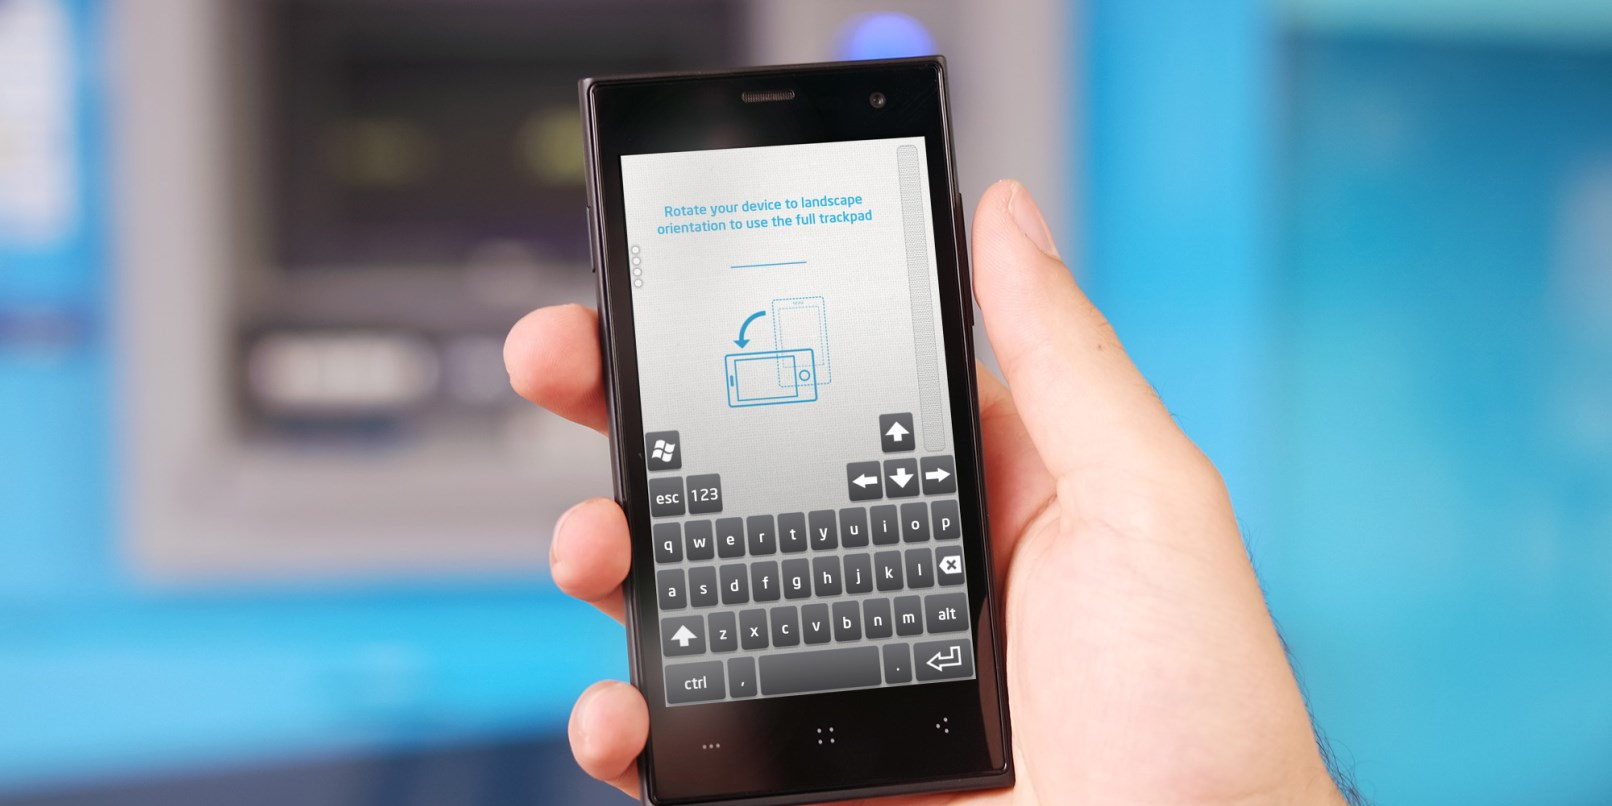 Intel Remote Keyboard for Android lets you control your PC from afar